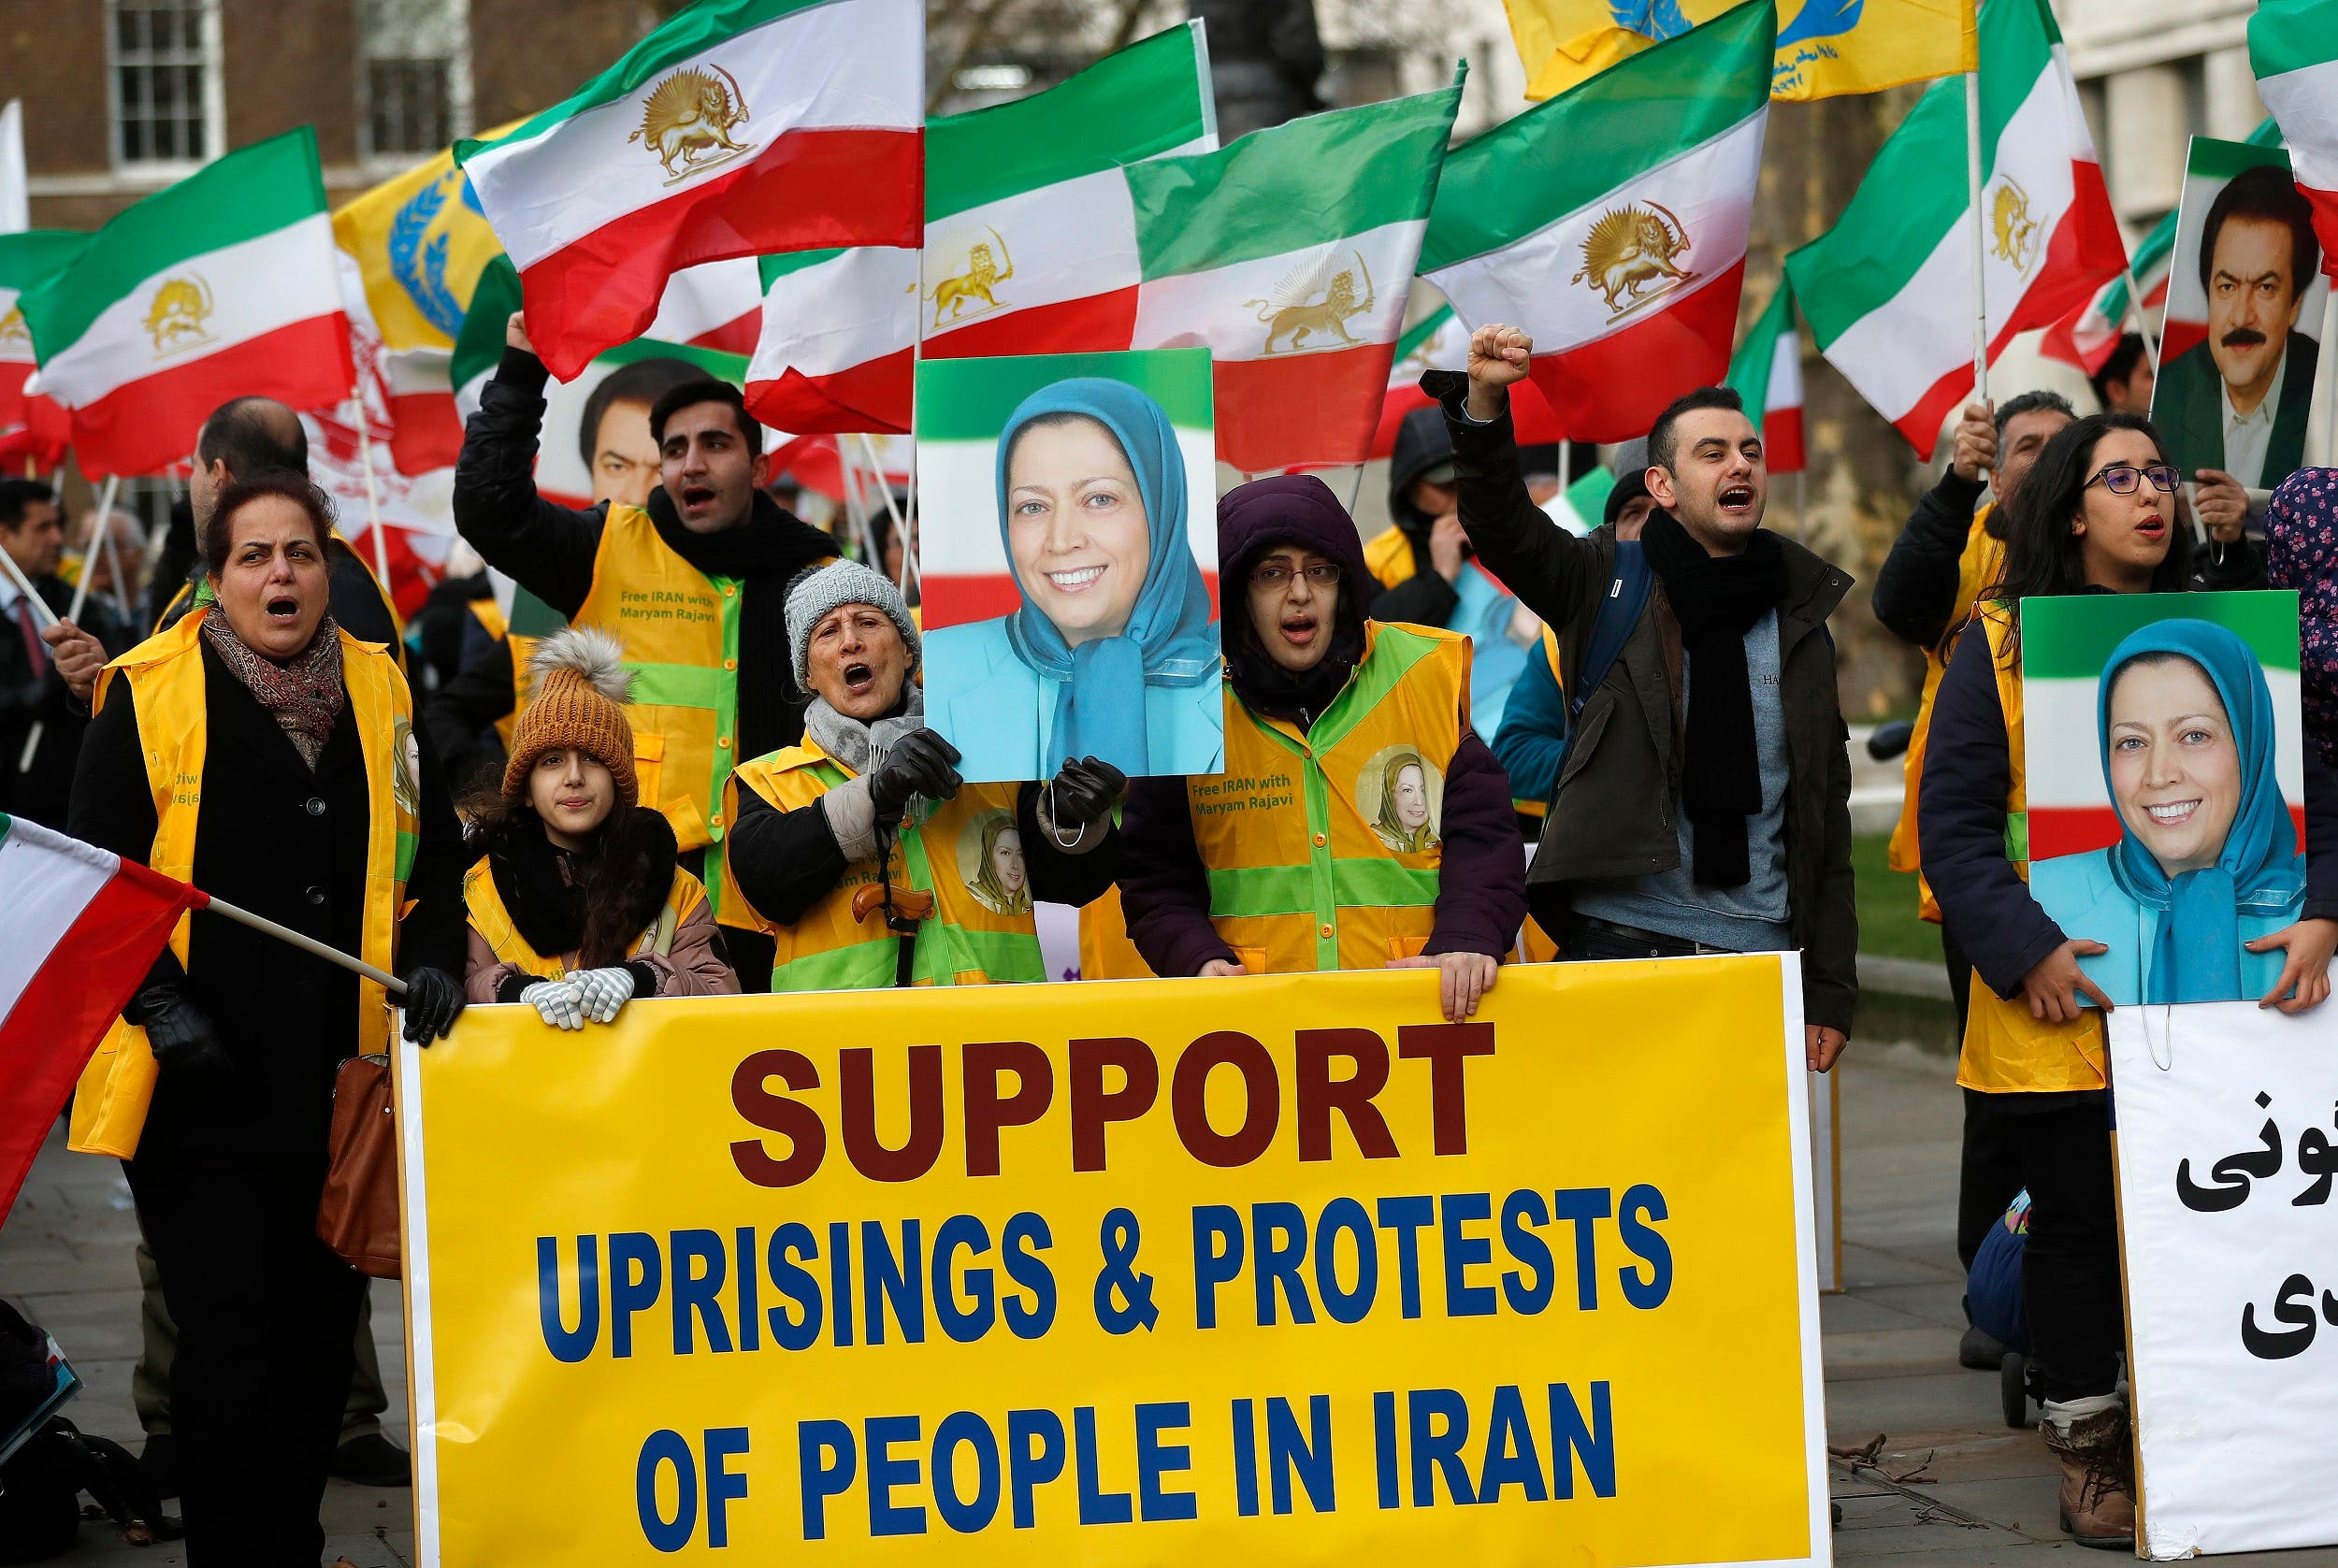 An opposition rally near 10 Downing Street in London on Jan. 4, 2018, in solidarity with the nationwide anti-regime protests in Iran. (AP)